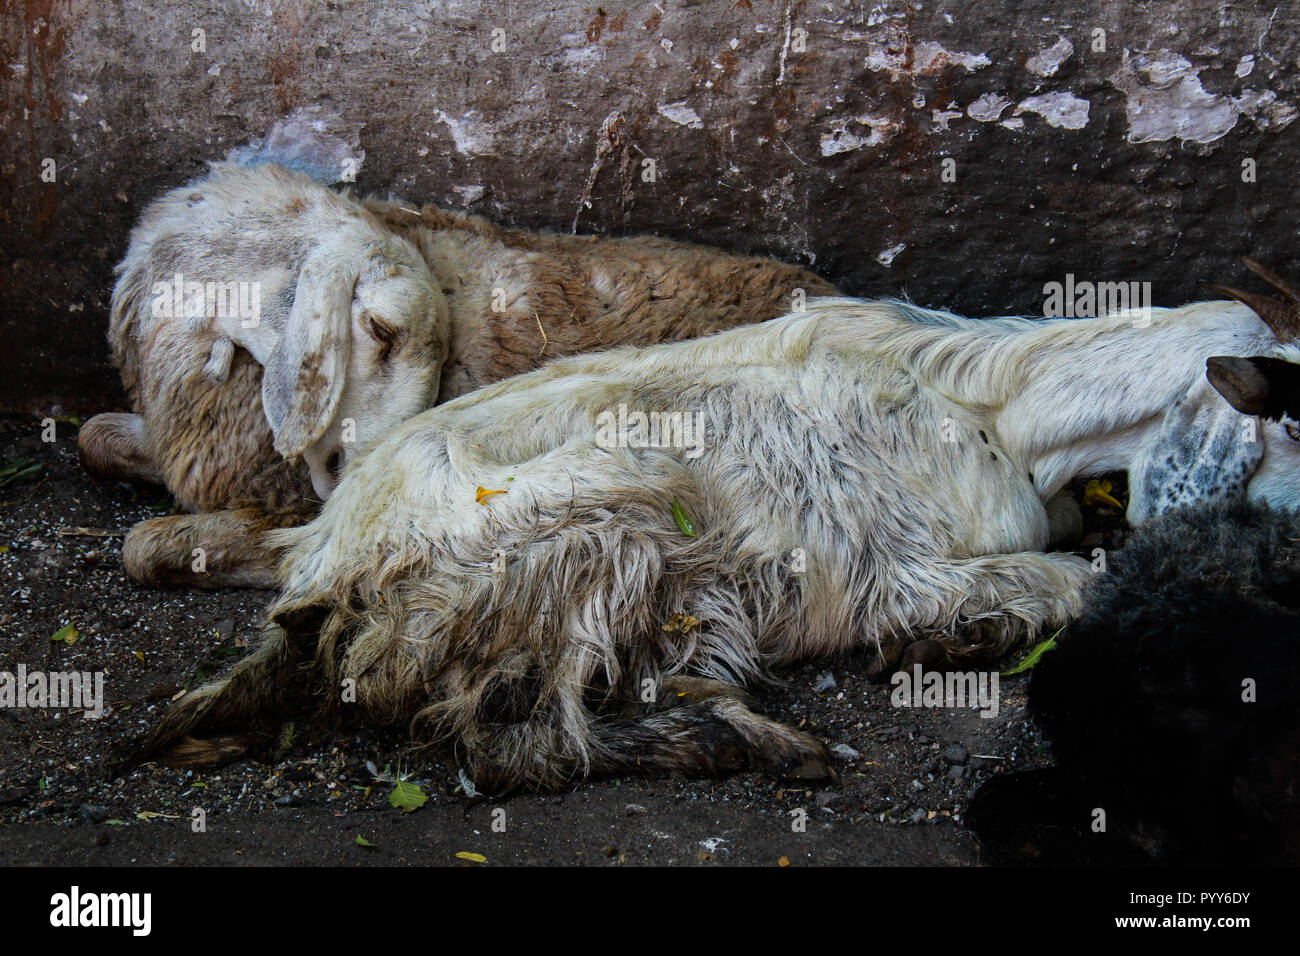 Two white goats rest on a street of Pune, India. After a painful trip the sorrow of these animals reflects on their tiredness, yet the entire world is. Stock Photo